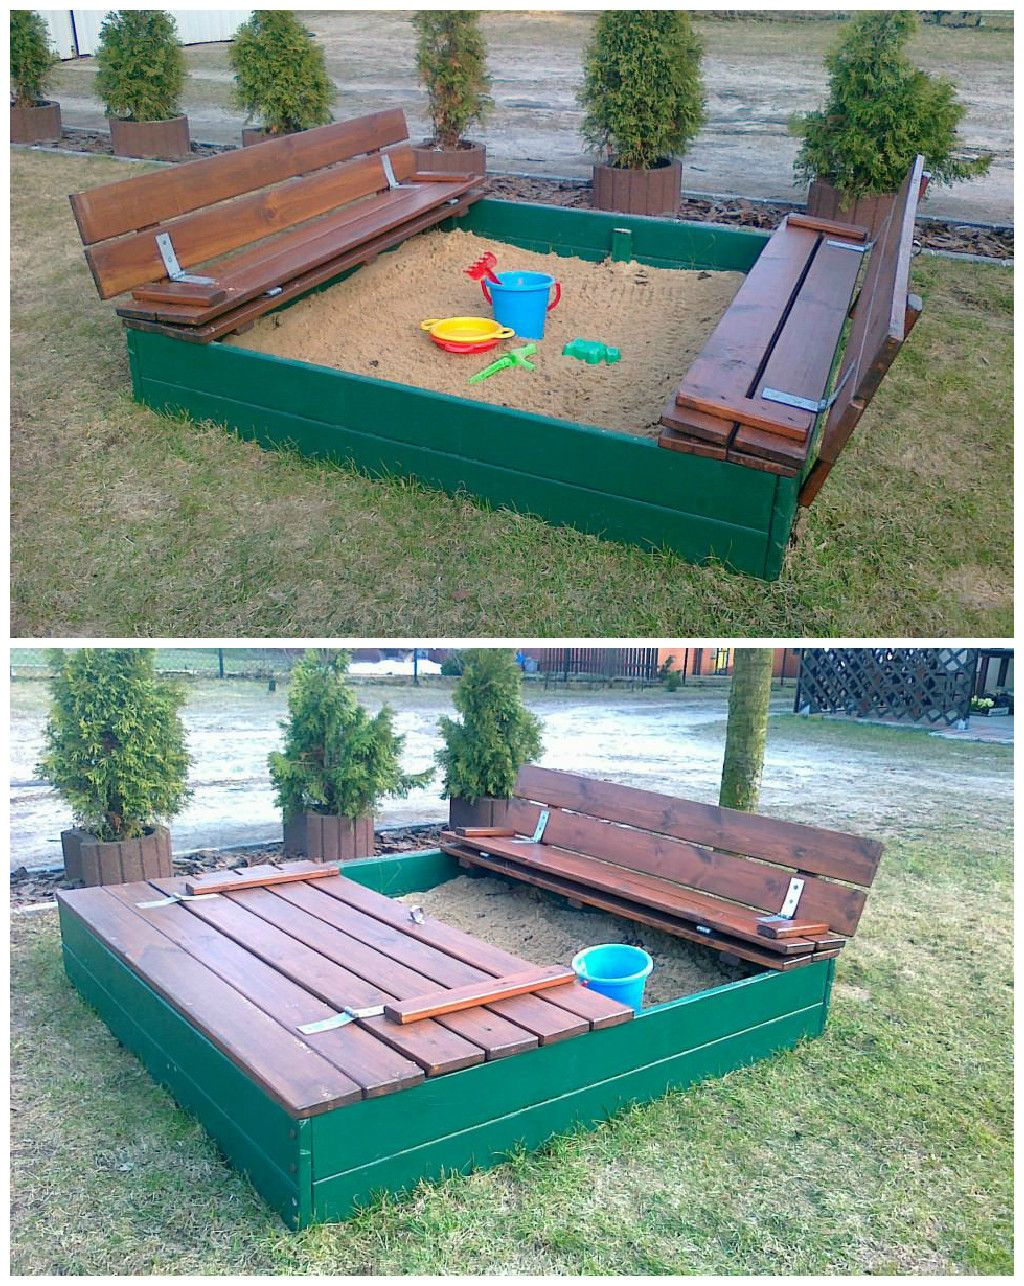 1001 pallets pallet kids playground here is a home made playground - Sandpits Made Out Of Recycled Pallets Pallet Ideas 1001 Pallets